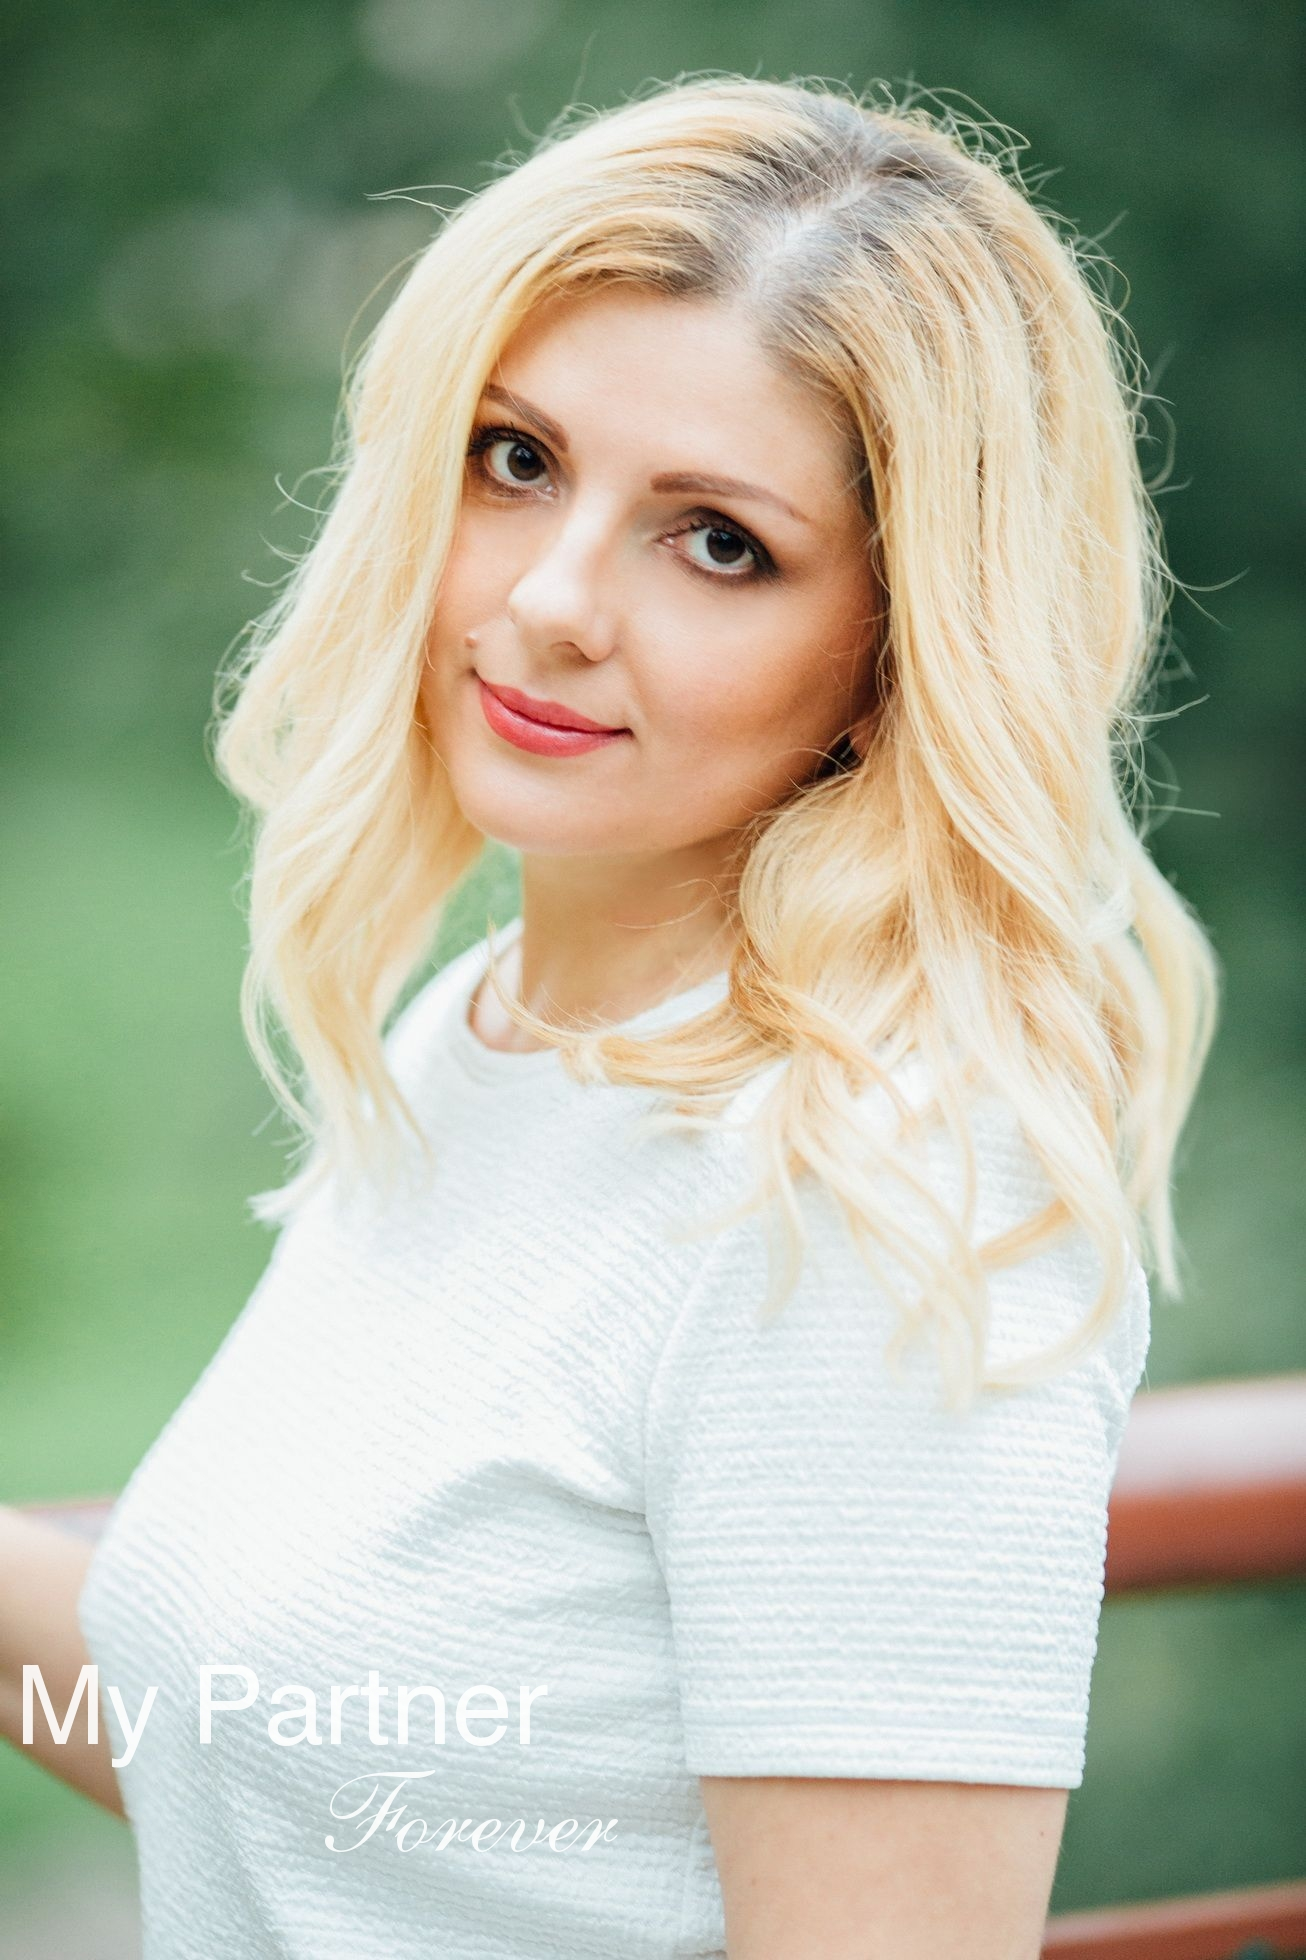 Online Dating with Stunning Belarusian Woman Alla from Grodno, Belarus